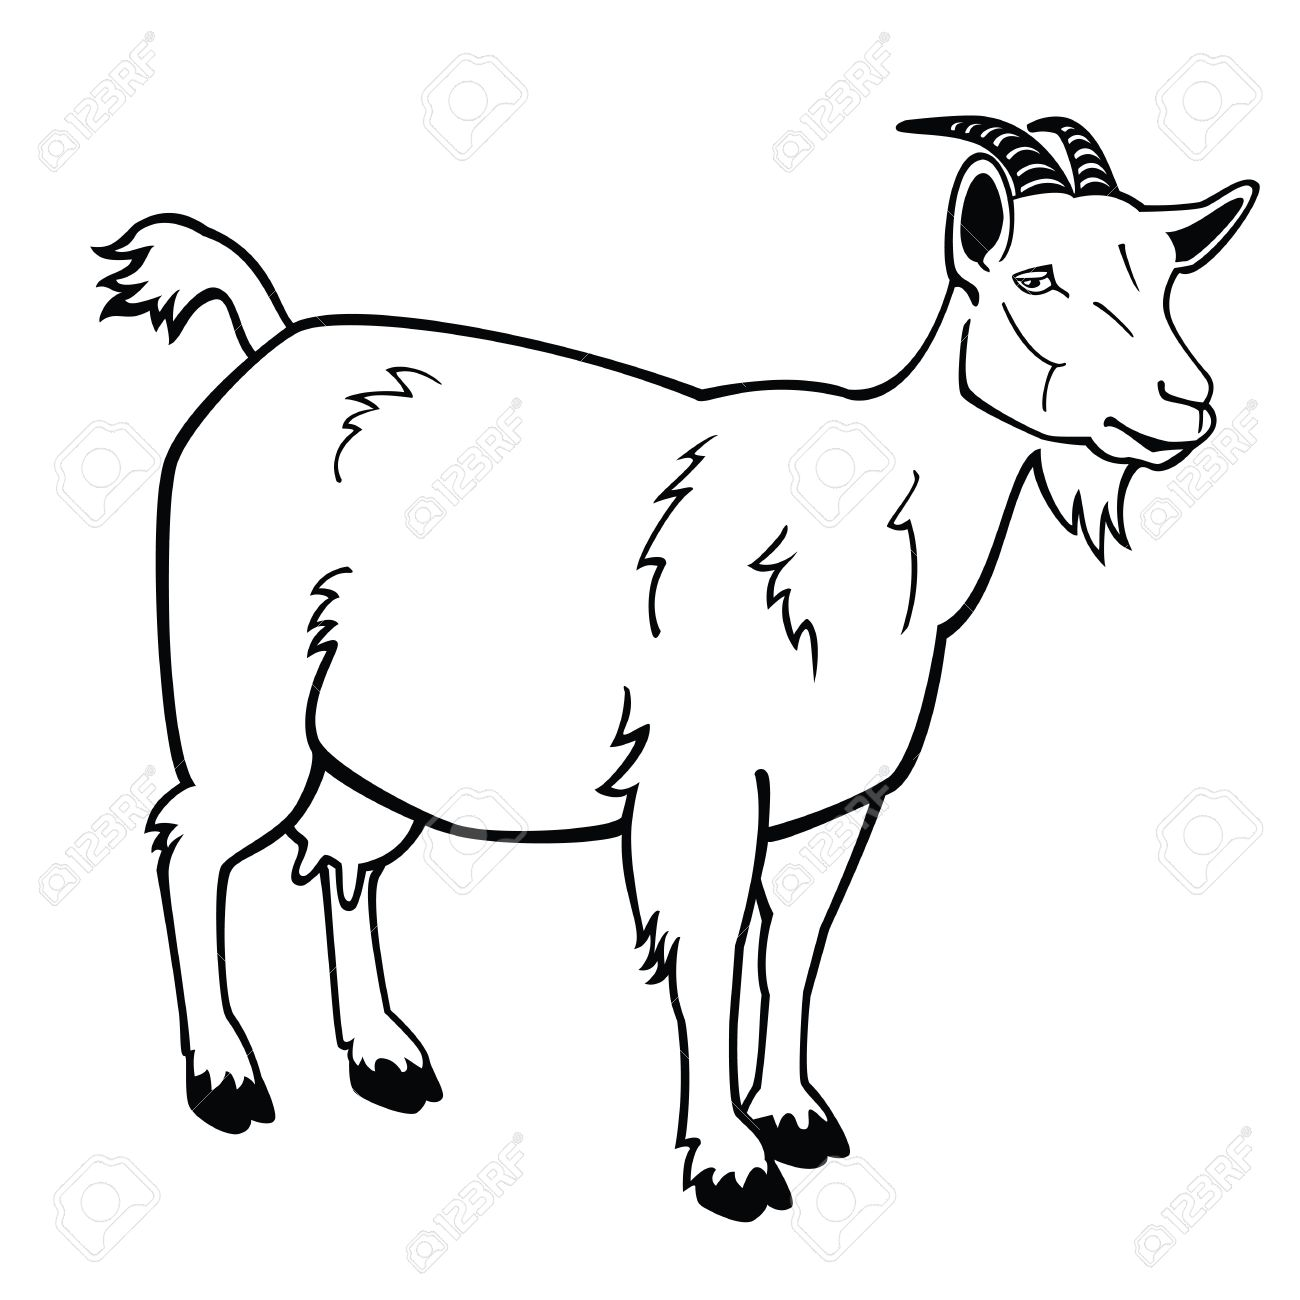 standing goat,black and white vector image,side view contour picture - 15339717